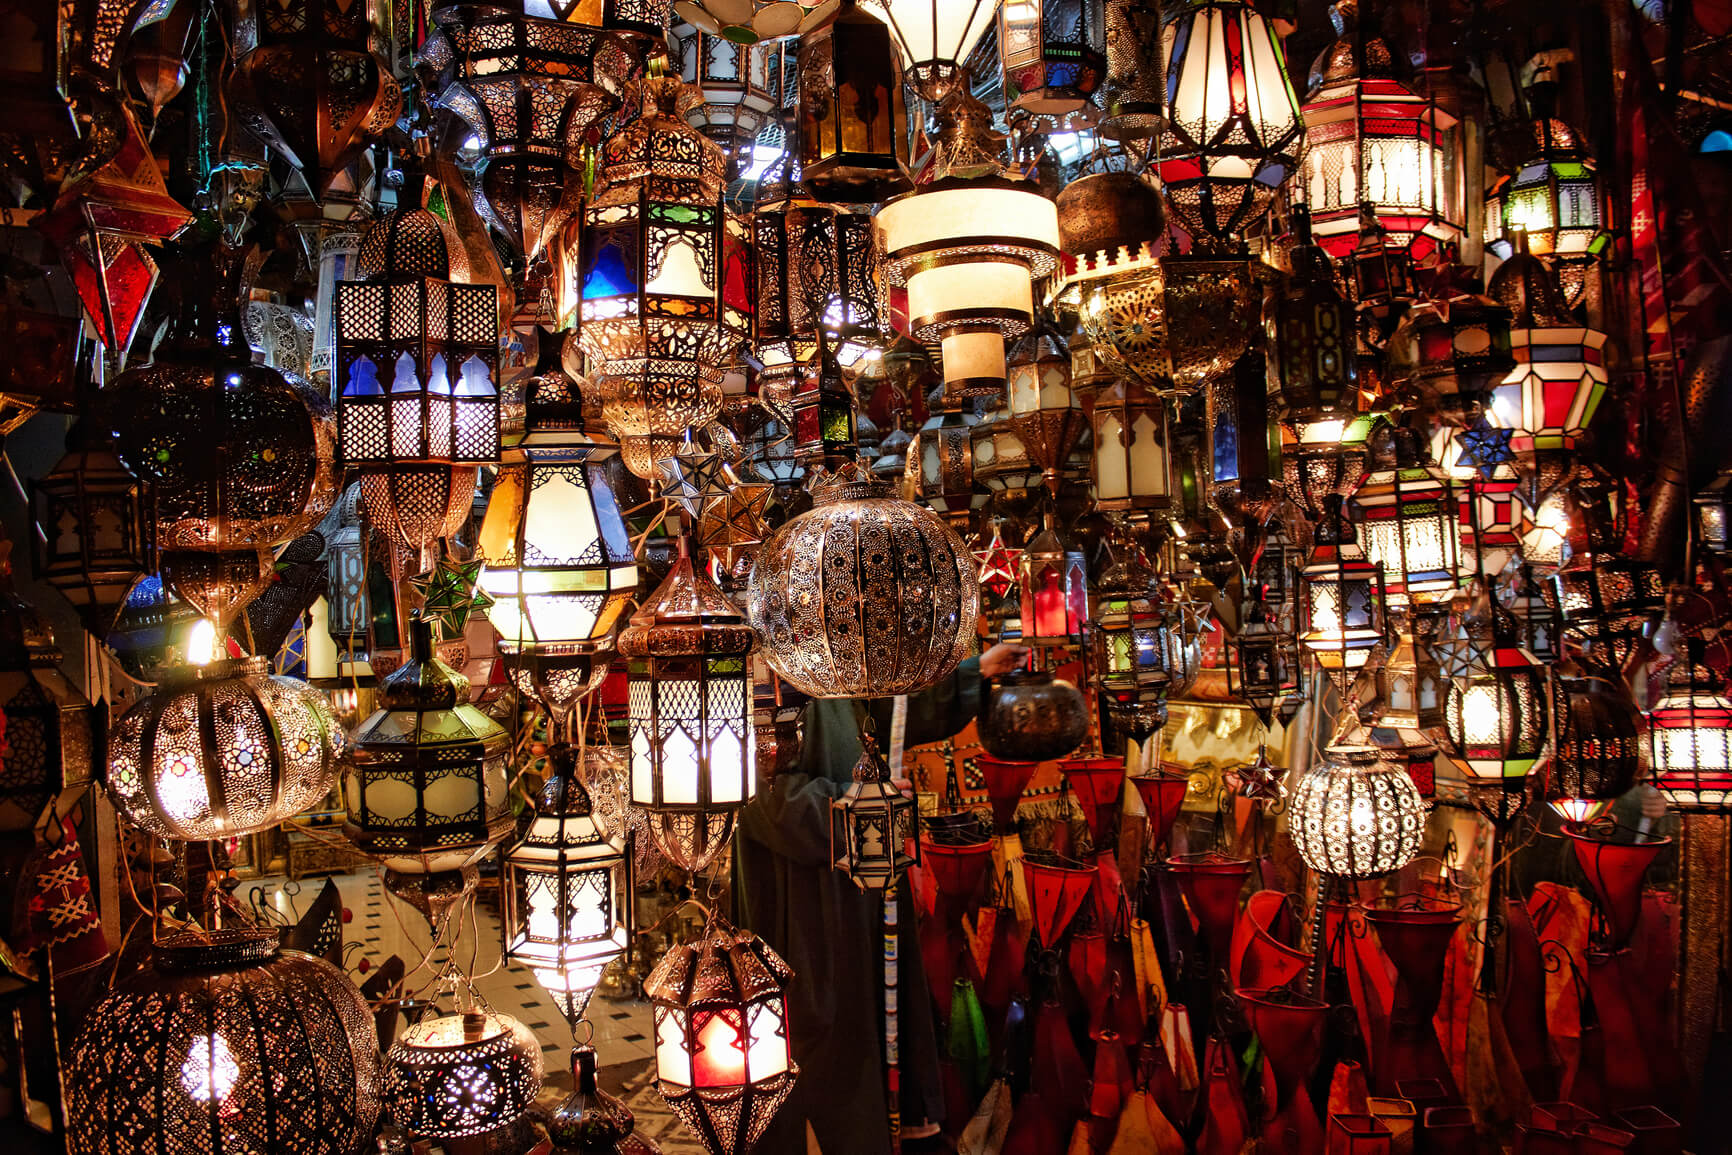 Phoenix, Arizona to Marrakesh, Morocco for only $588 roundtrip (Oct-Dec dates)